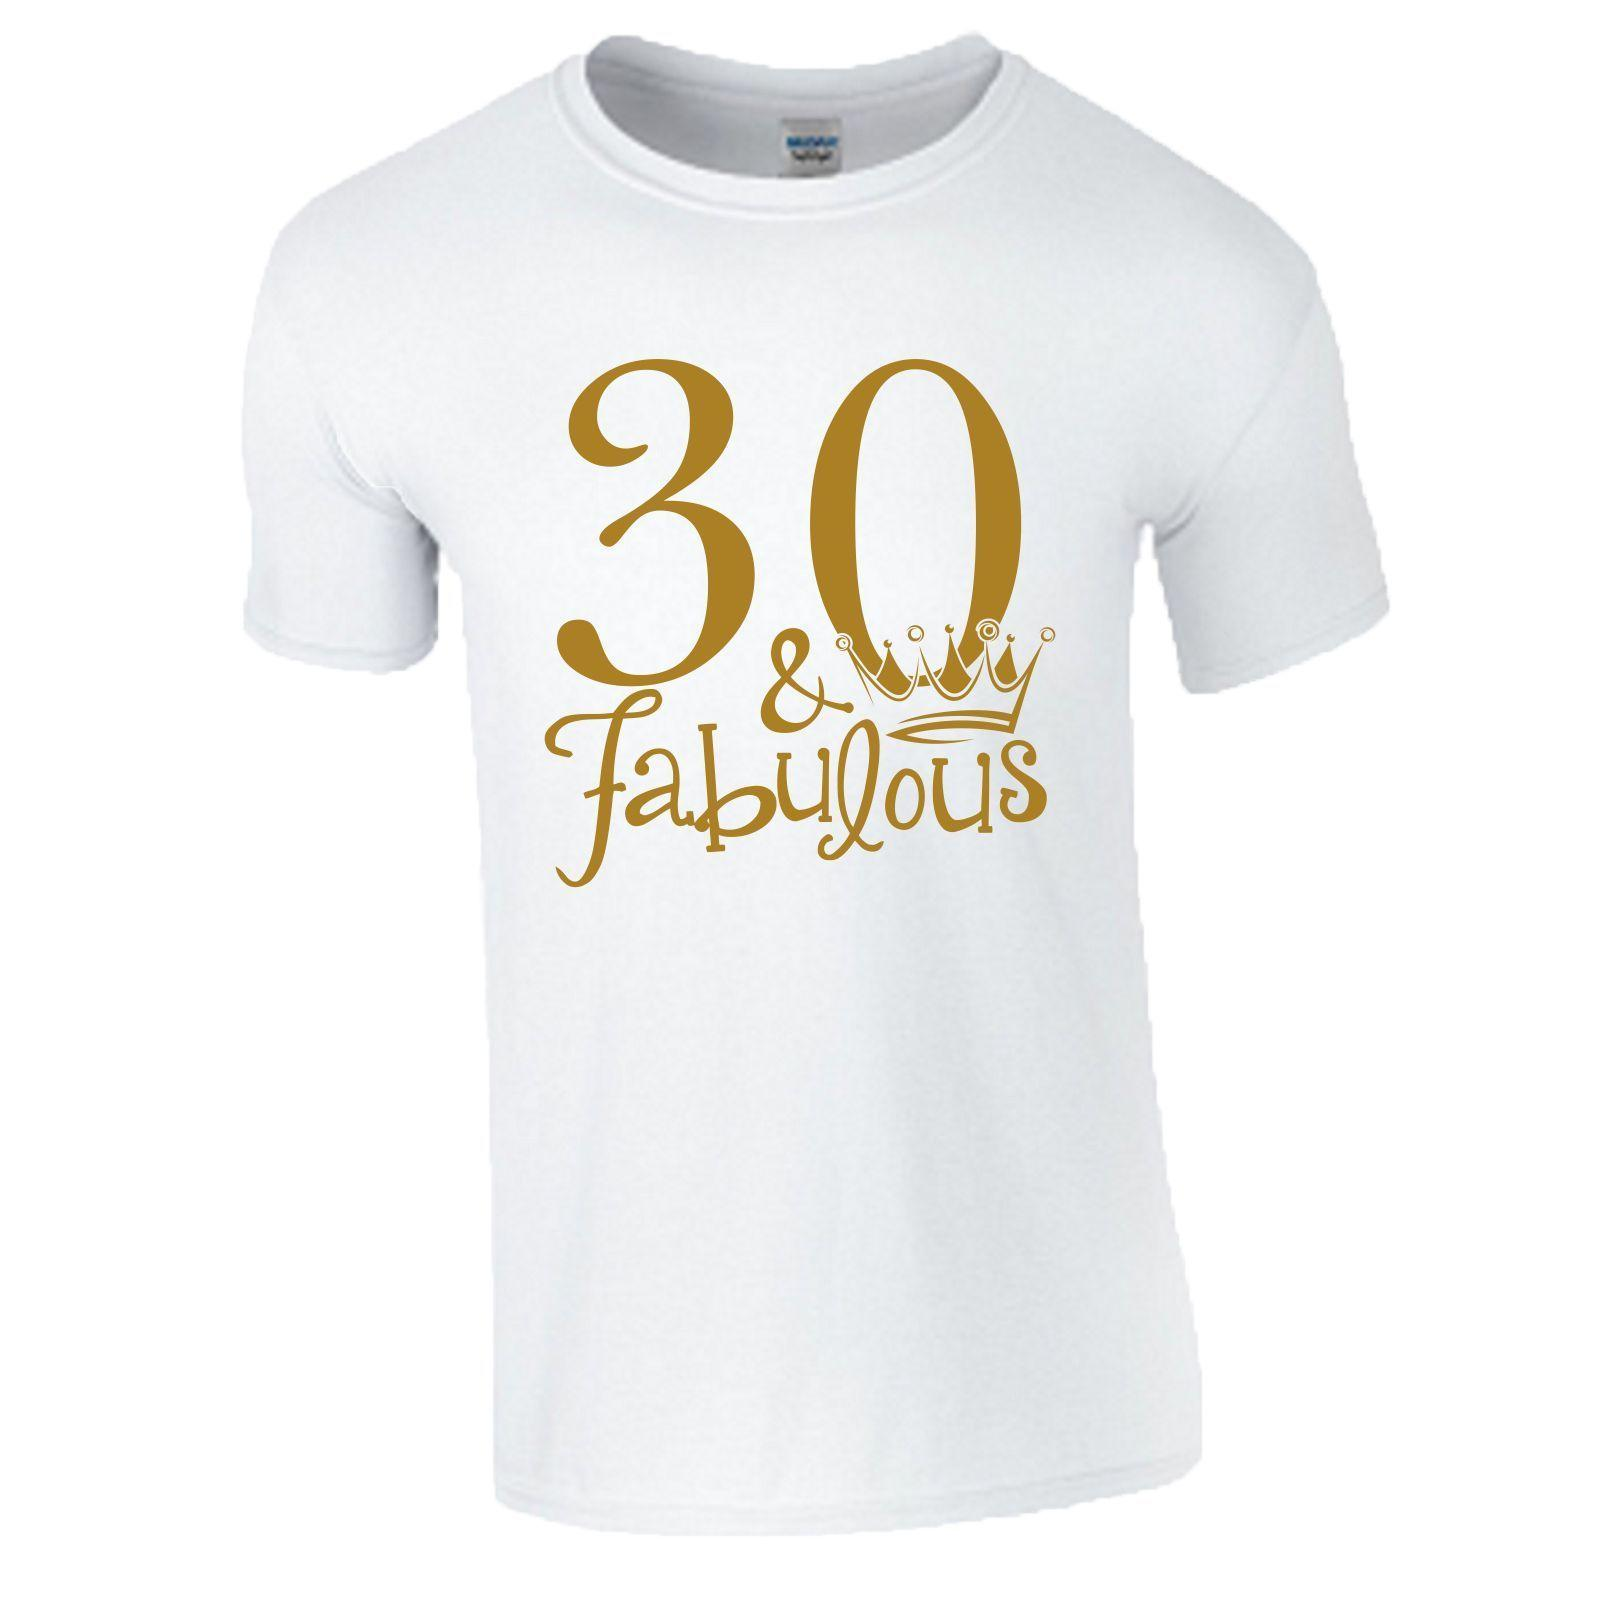 8f690b110b9b41 30th Birthday Gift T Shirt Made In 1988 King Queen 30 Fabulous Crown Mens  Ladies Online Buy T Shirt Best T Shirt Shop Online From Teestotal